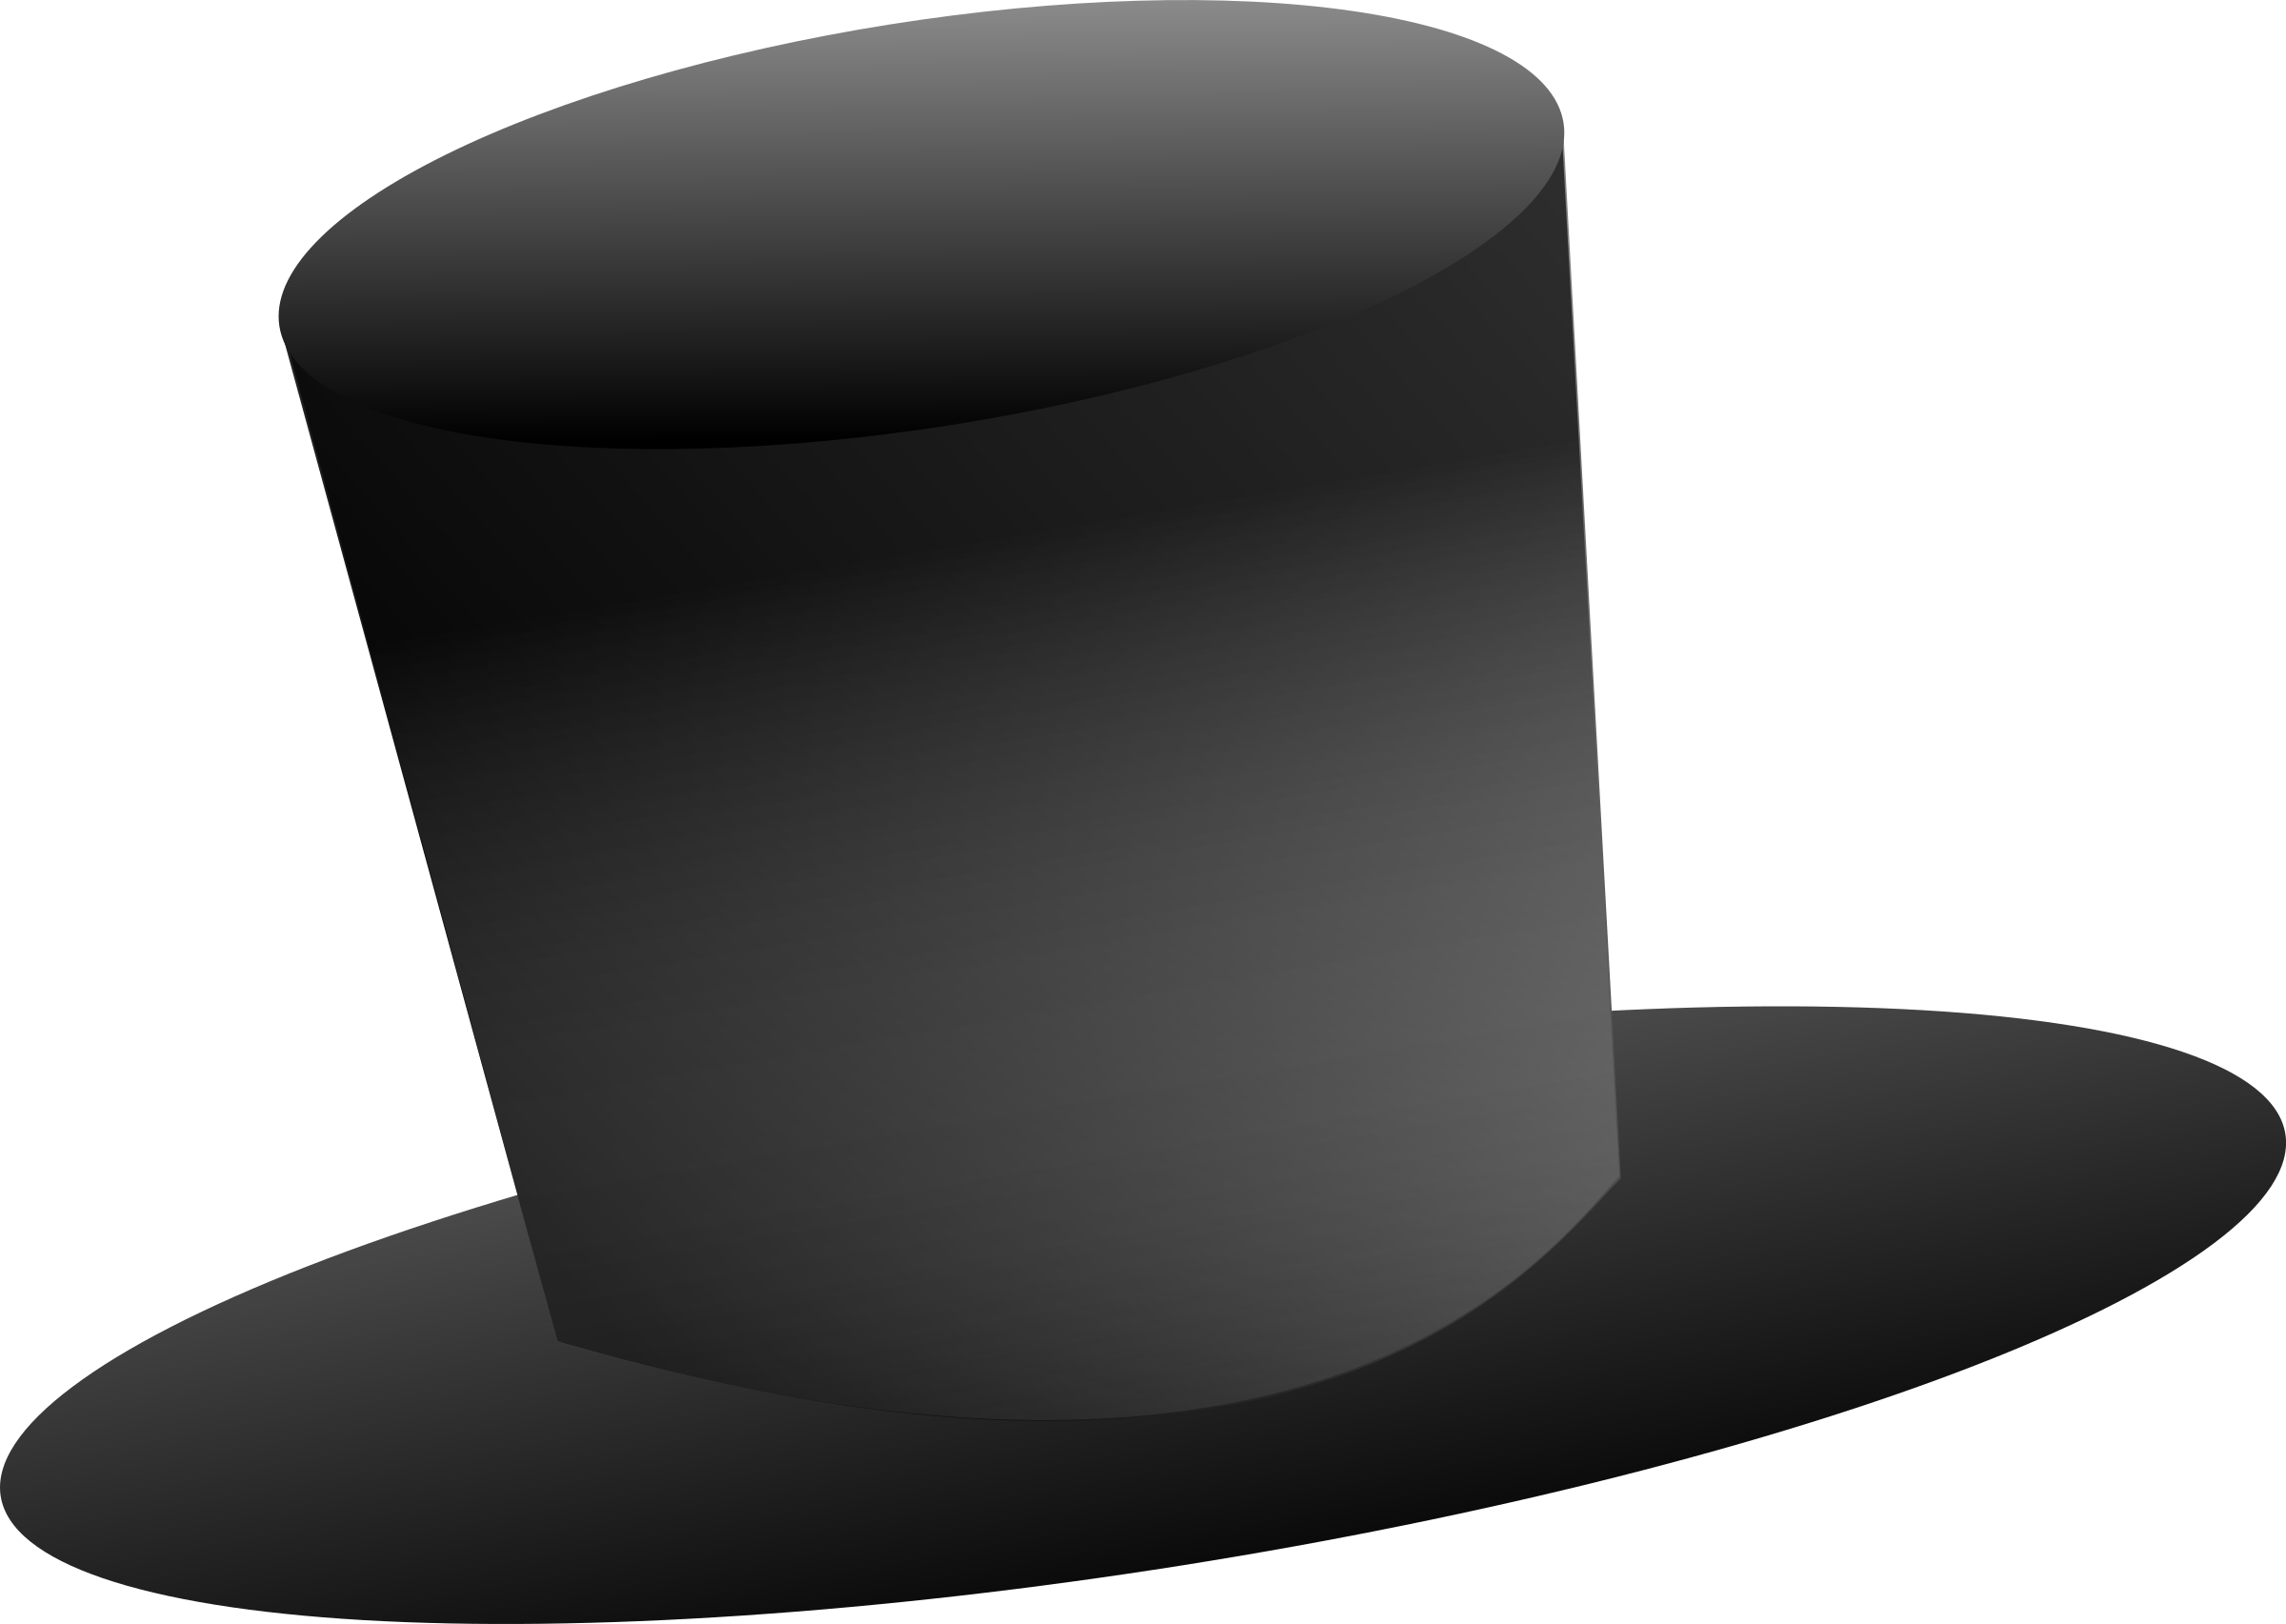 Tophat by bpcomp